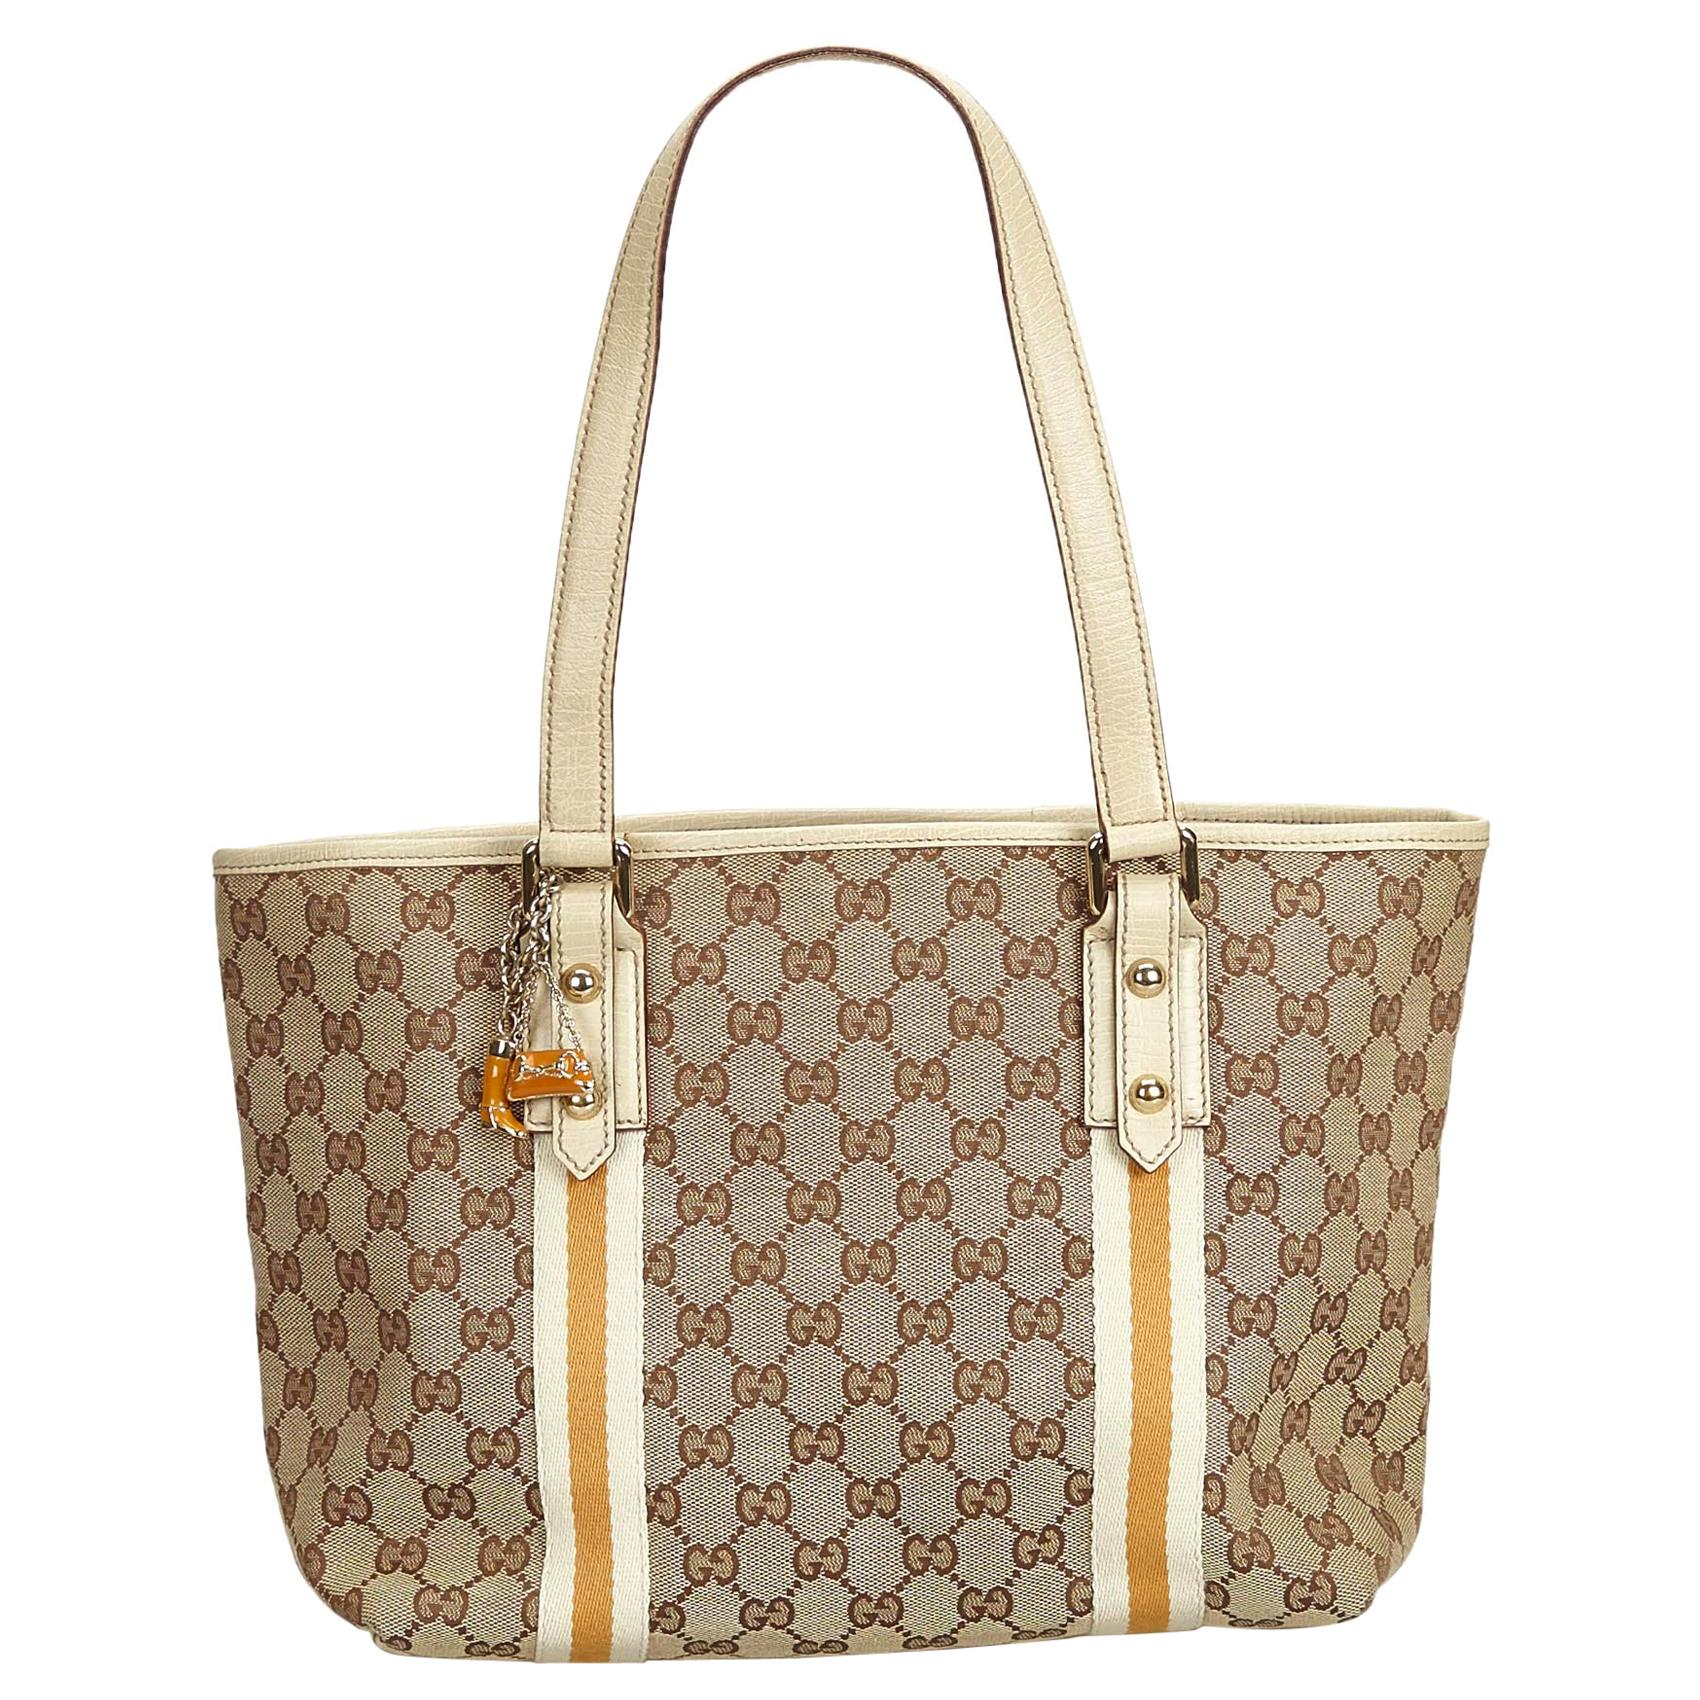 fe4ee318211d Vintage Gucci Handbags and Purses - 2,467 For Sale at 1stdibs - Page 6